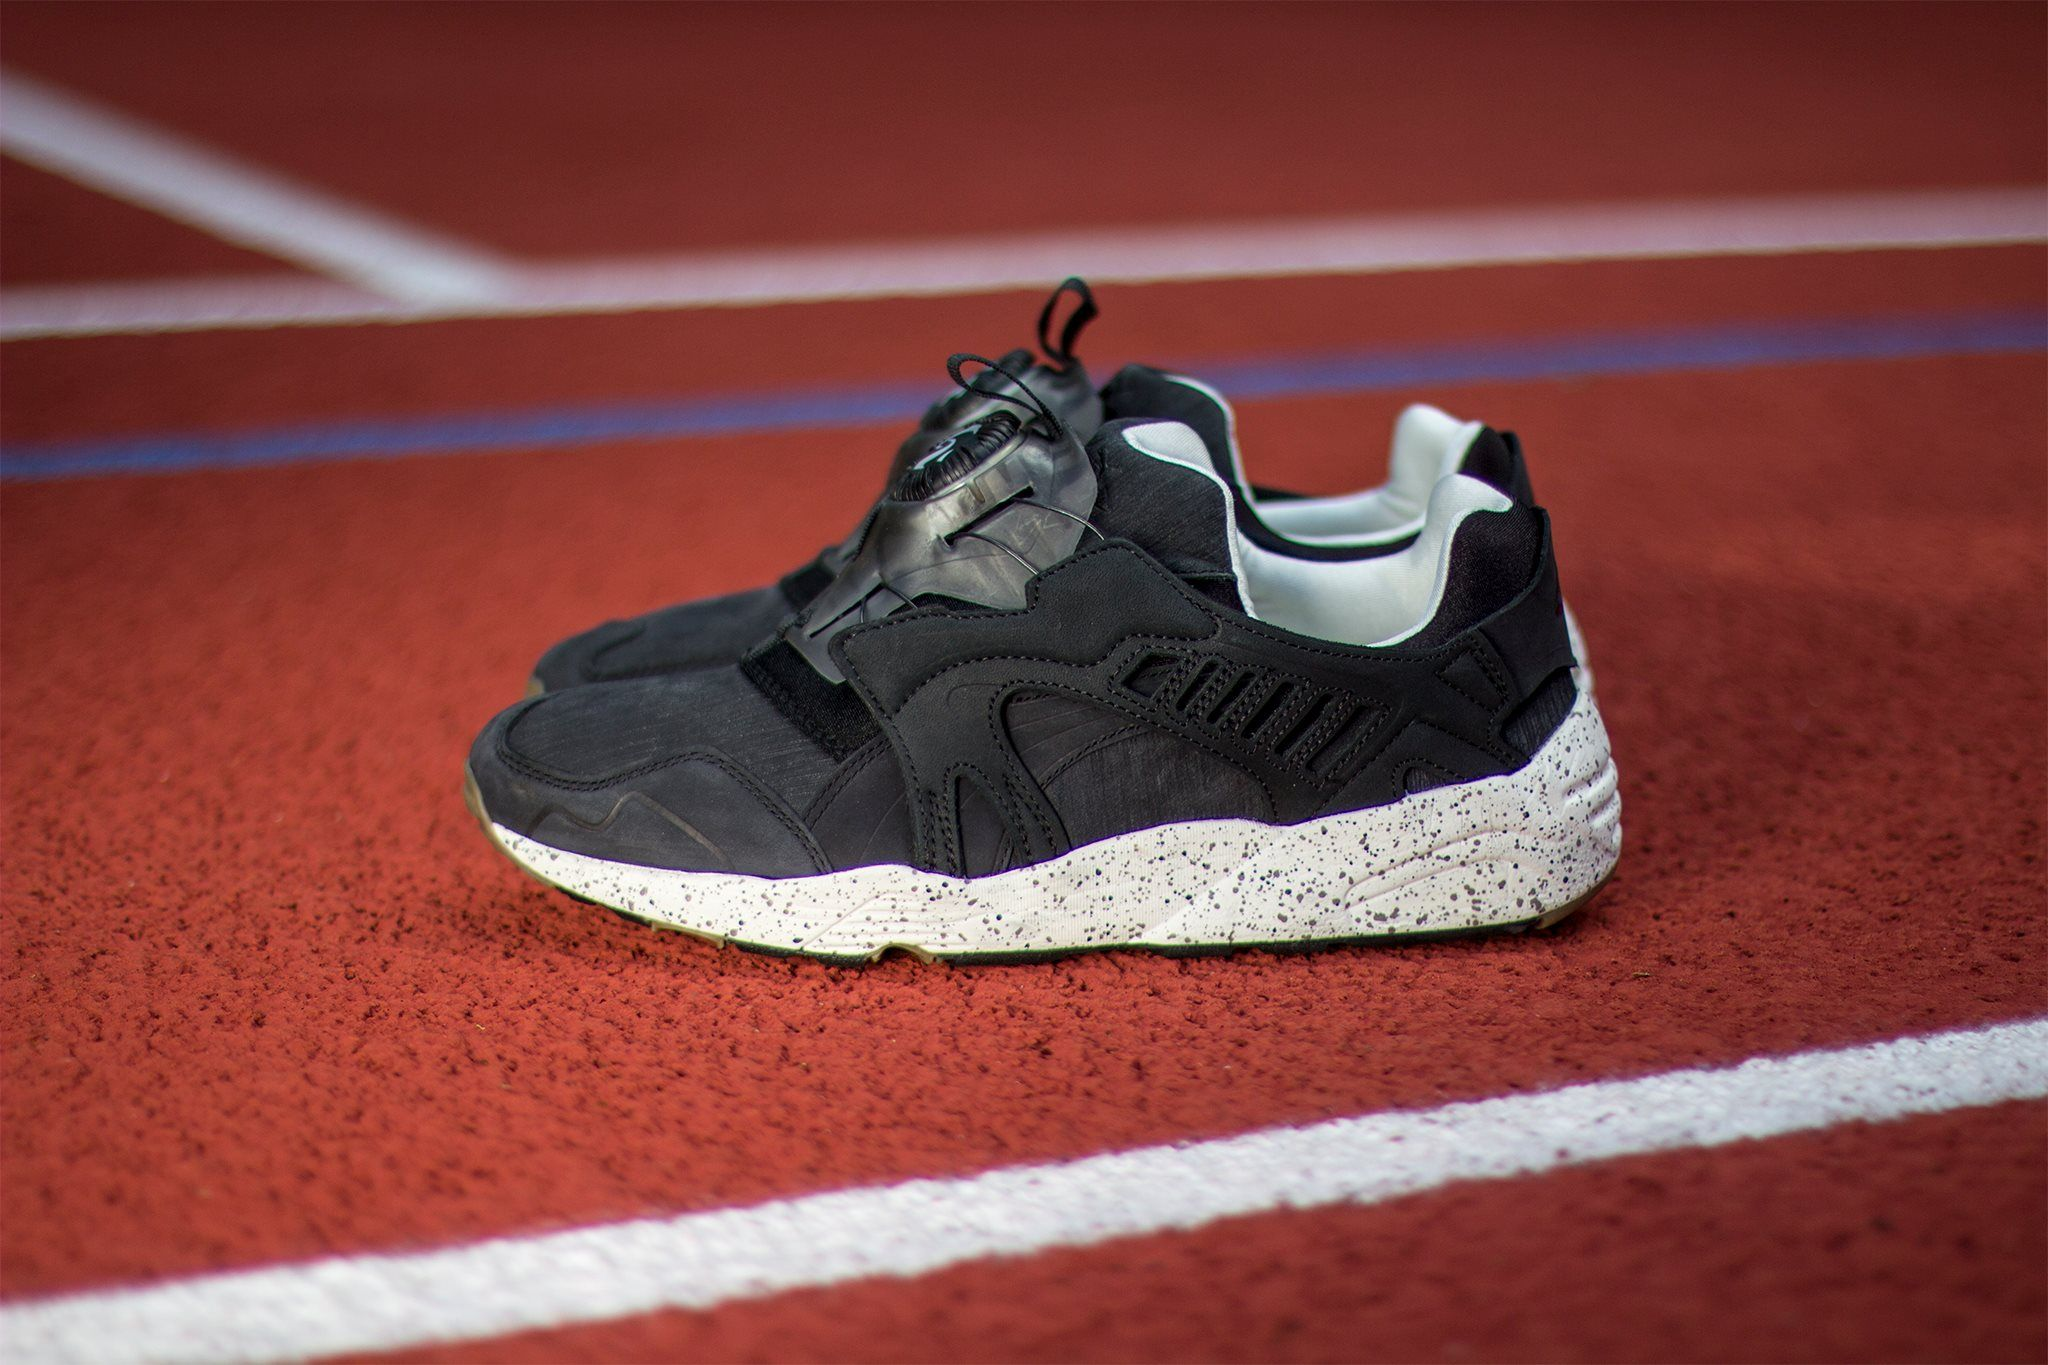 N Calm Pinterest Trinomic Sneakers Puma Disc Ecwxp4Hqyg